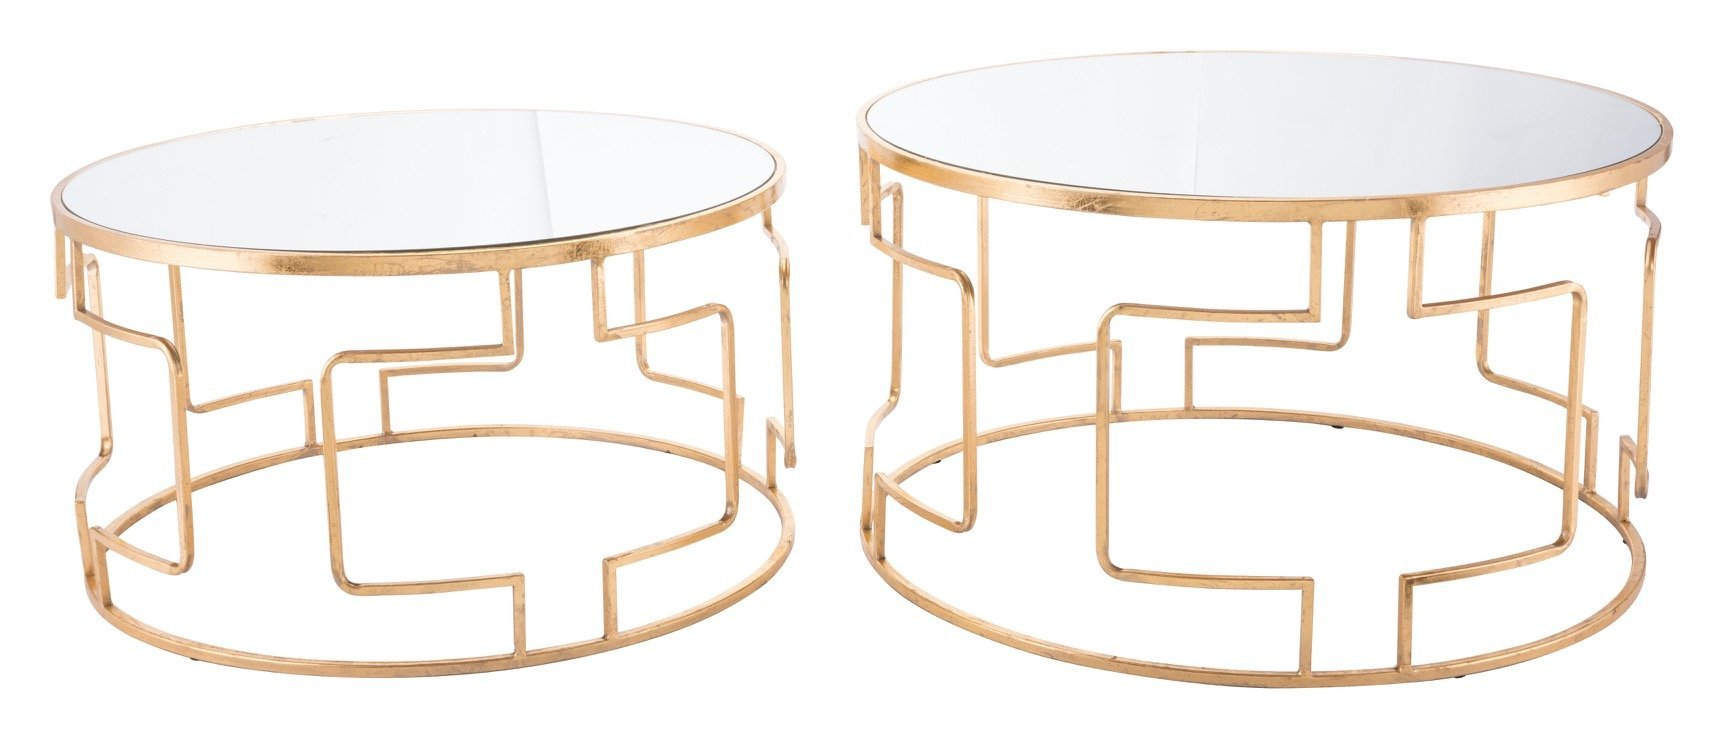 king round accent tables gold with mirrored glass top set side alan decor table sofa high dining chairs aluminium threshold strip mid century chair furniture showrooms bangalore